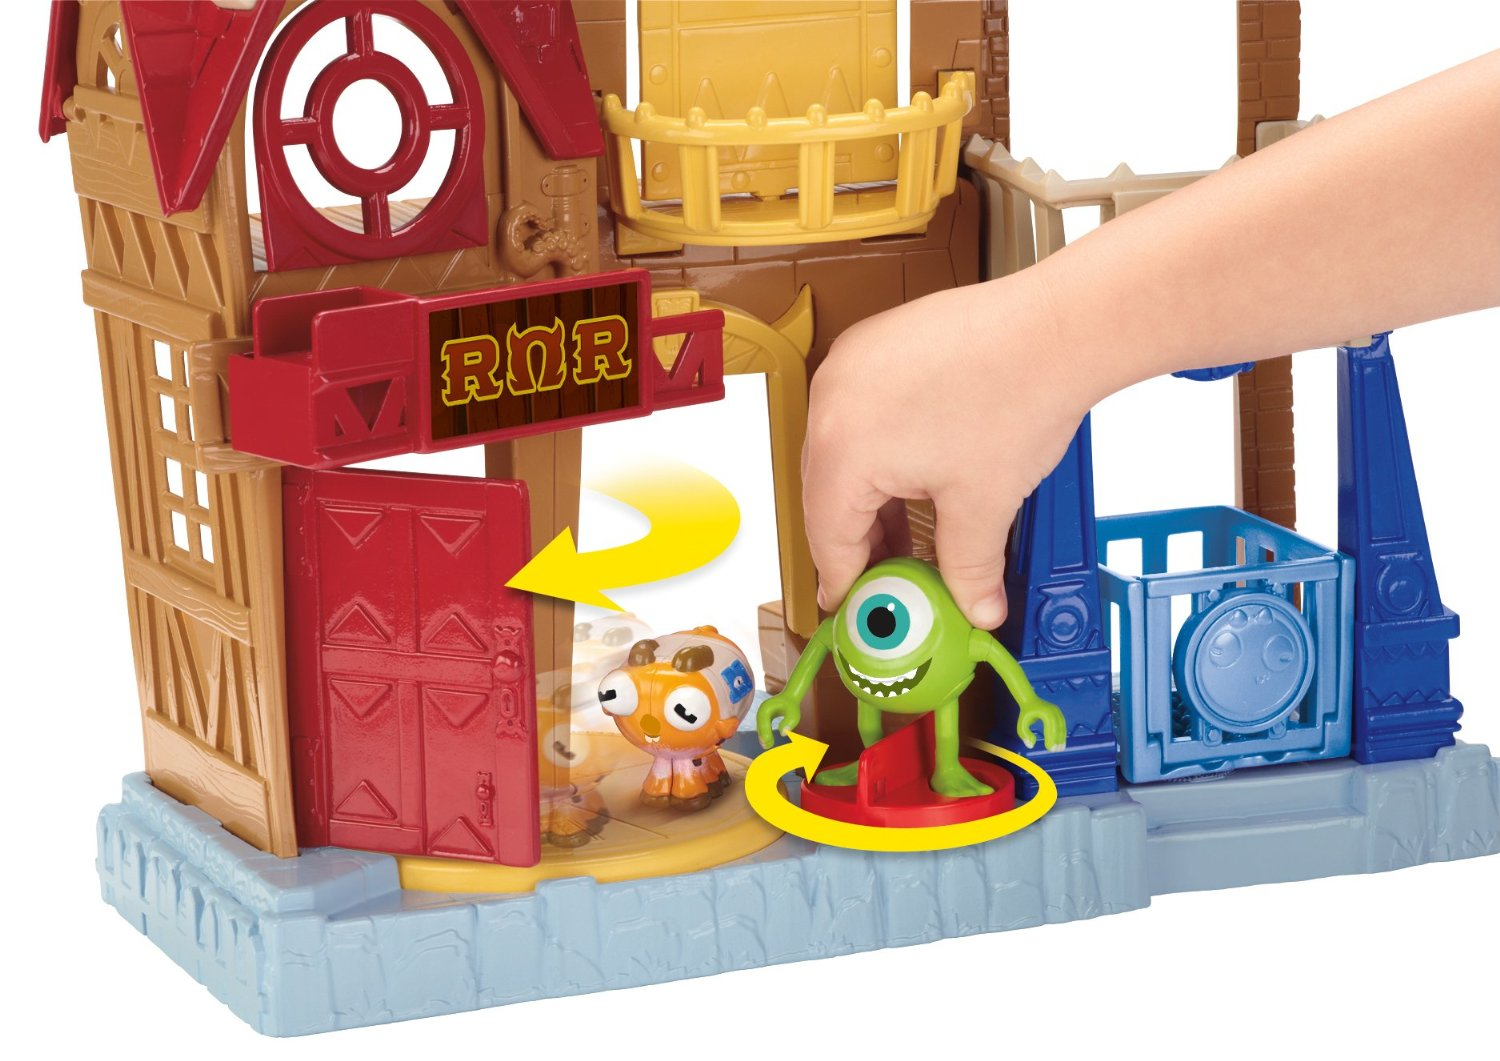 Toys For Everyone : Monsters university toys apparels for everyone